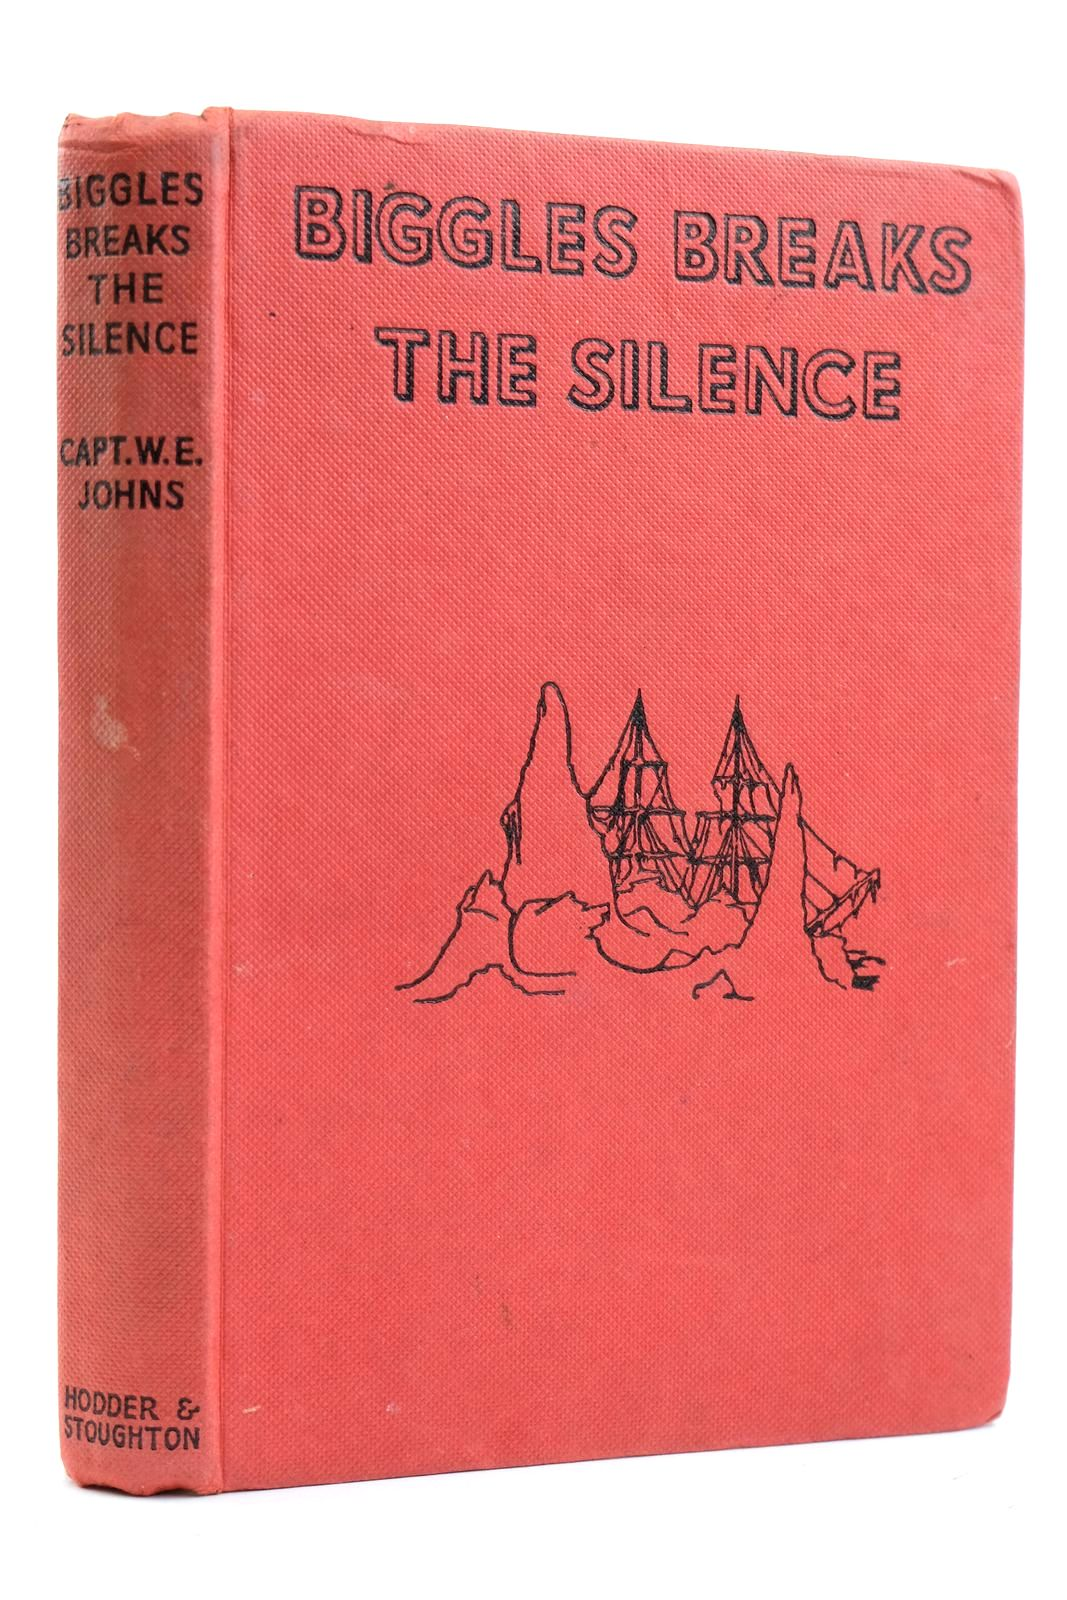 Photo of BIGGLES BREAKS THE SILENCE written by Johns, W.E. illustrated by Stead,  published by Hodder & Stoughton (STOCK CODE: 2131797)  for sale by Stella & Rose's Books